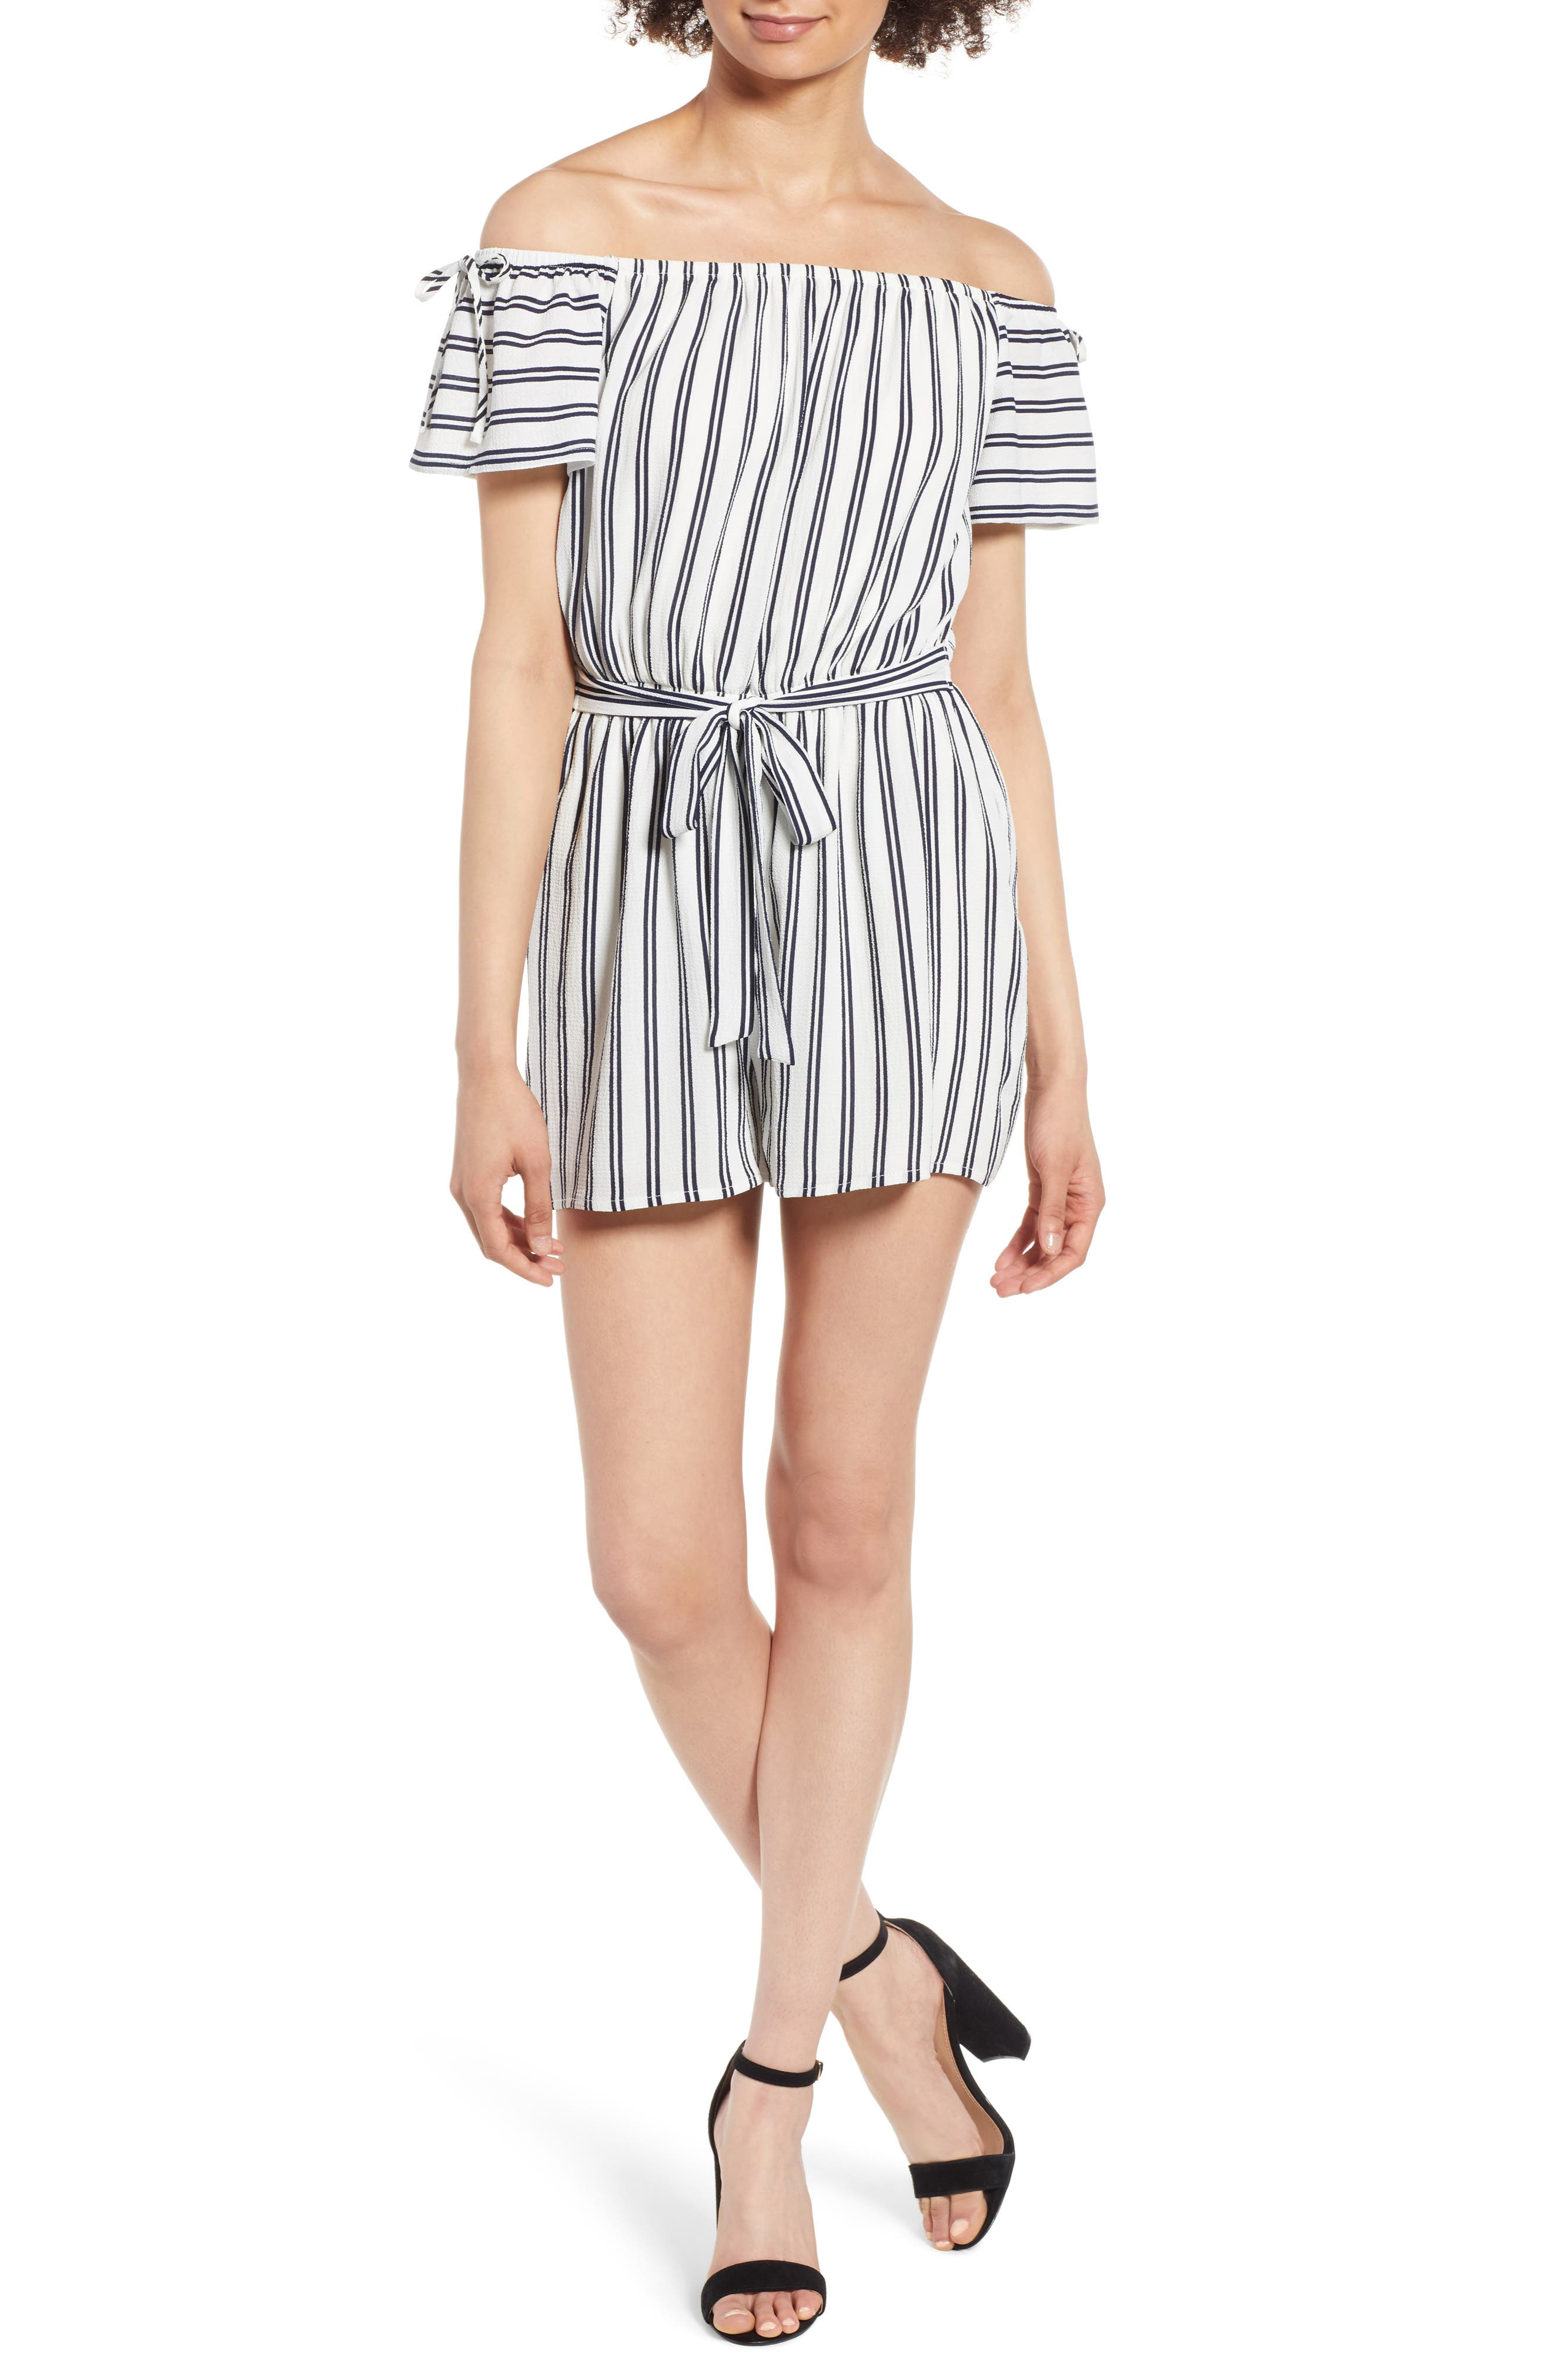 One Clothing Stripe Off the Shoulder Romper